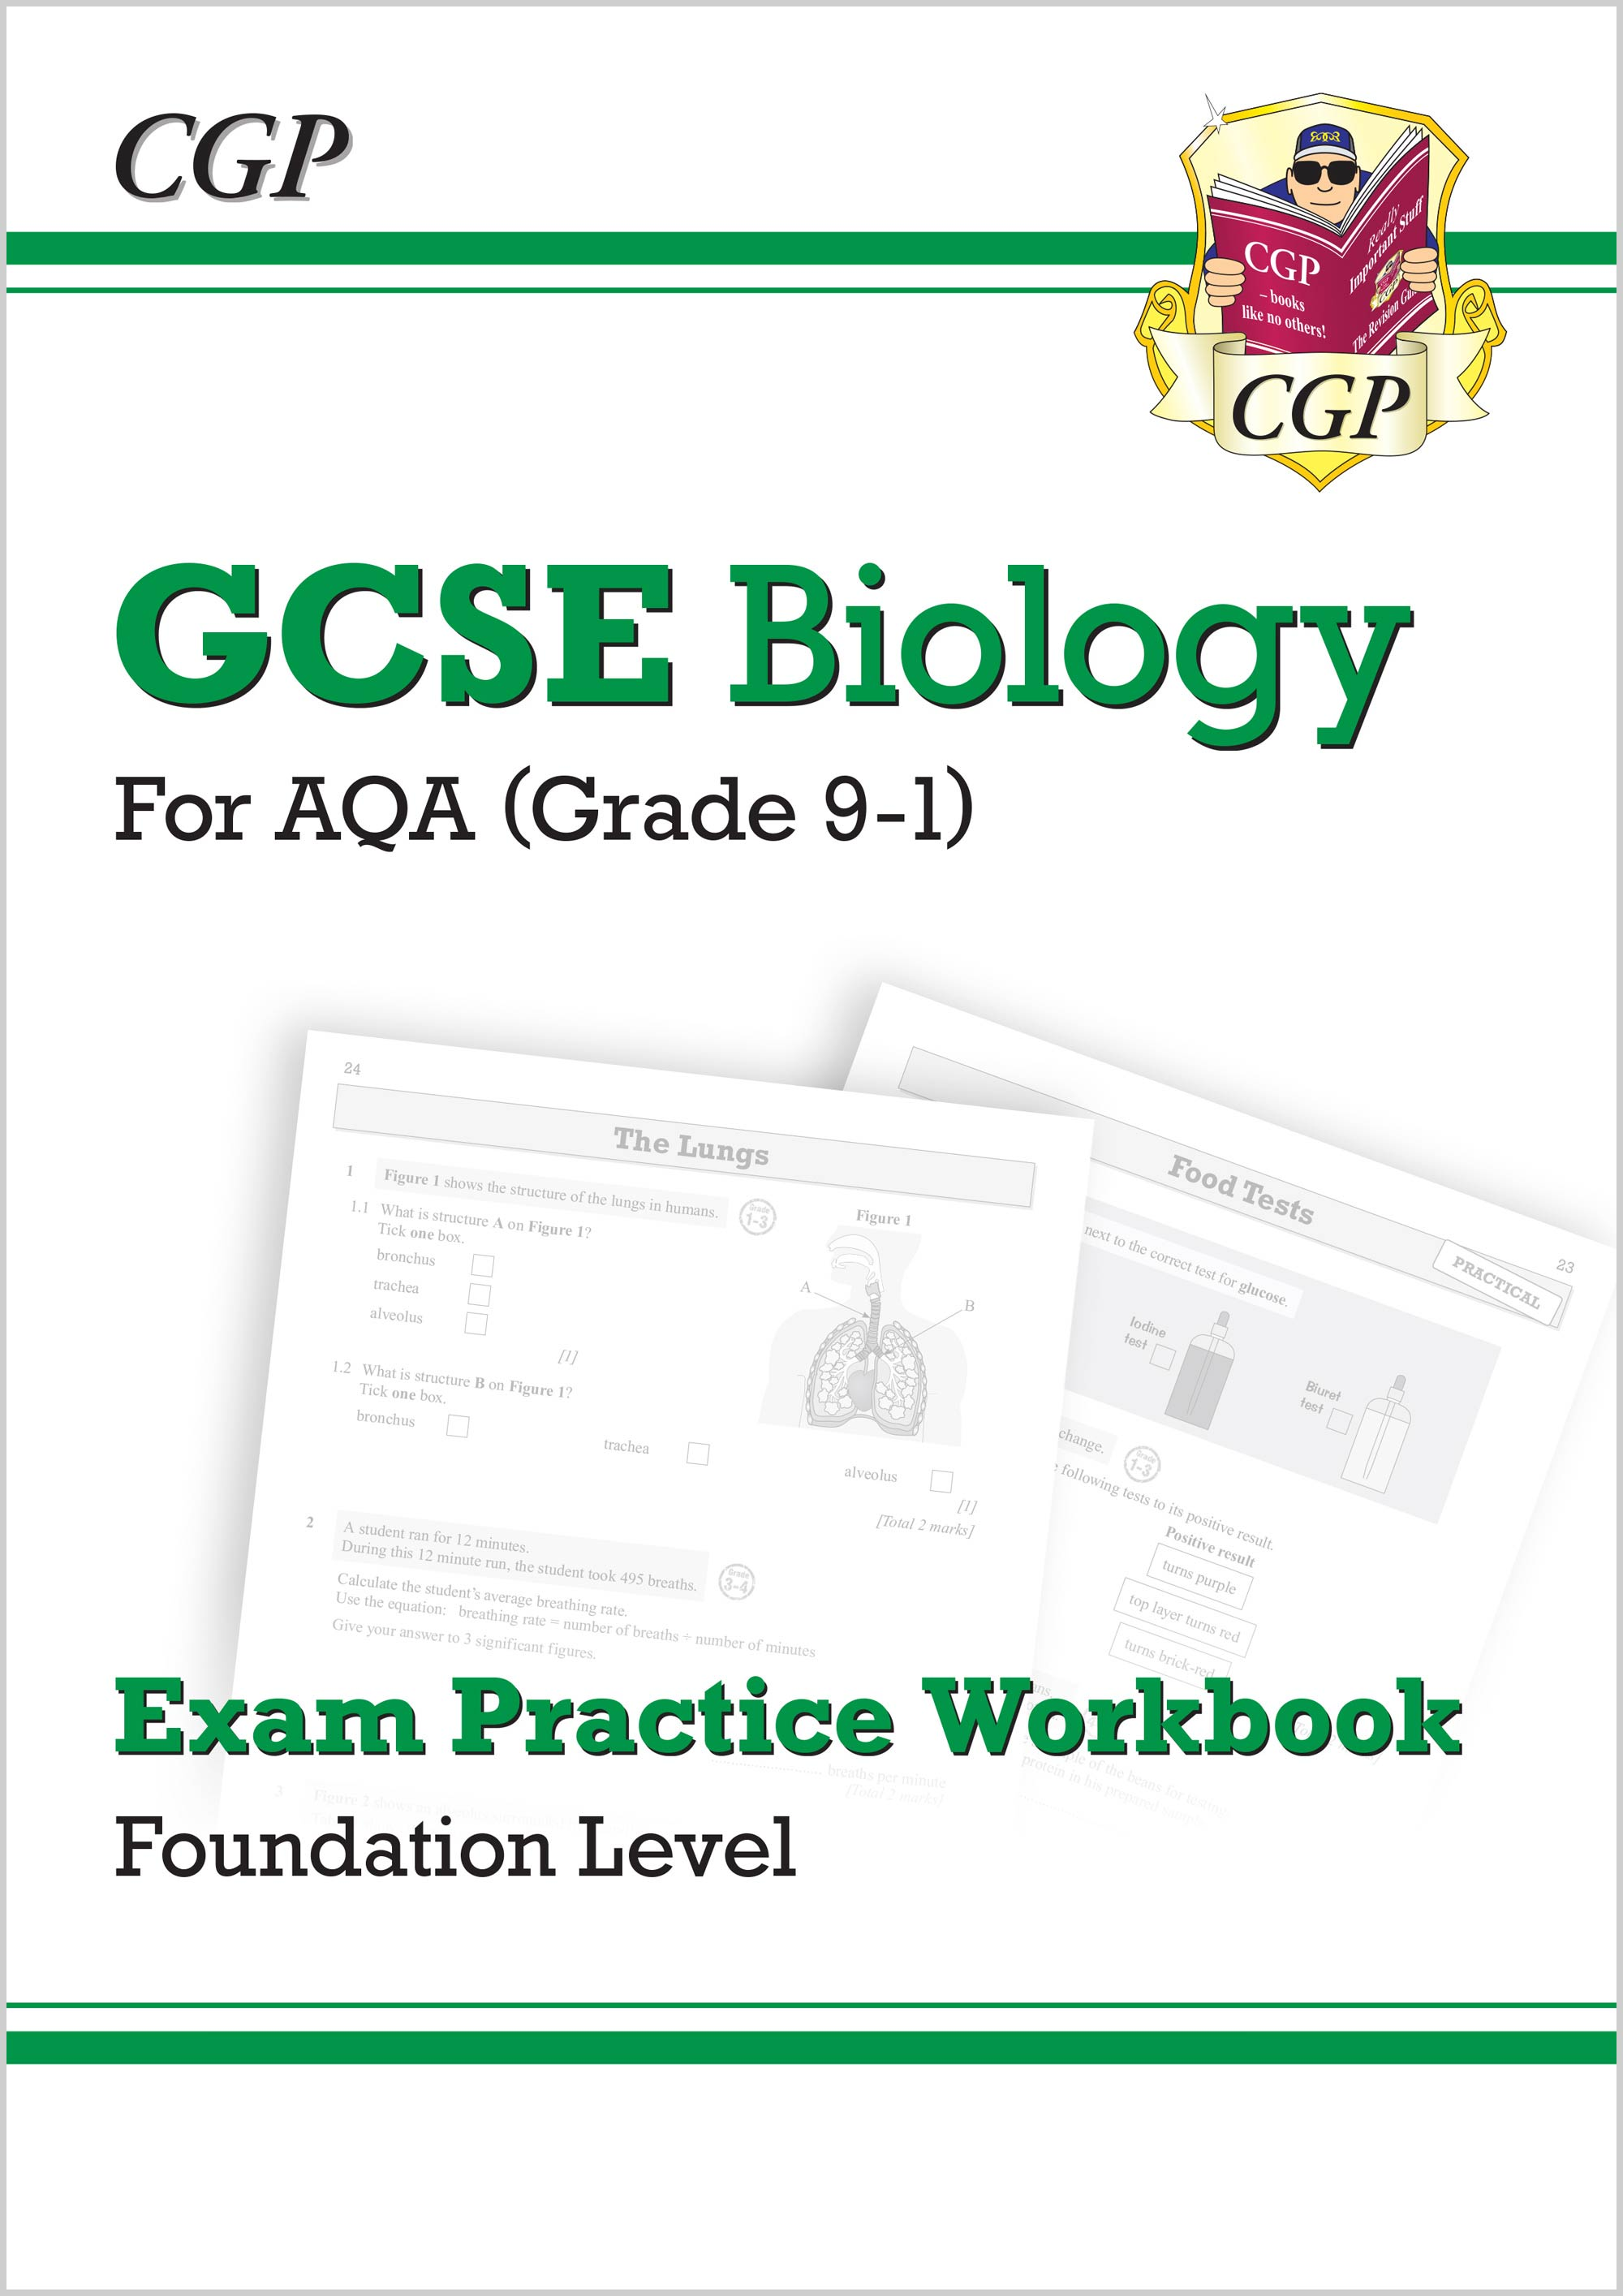 BAFQ41 - New Grade 9-1 GCSE Biology: AQA Exam Practice Workbook - Foundation